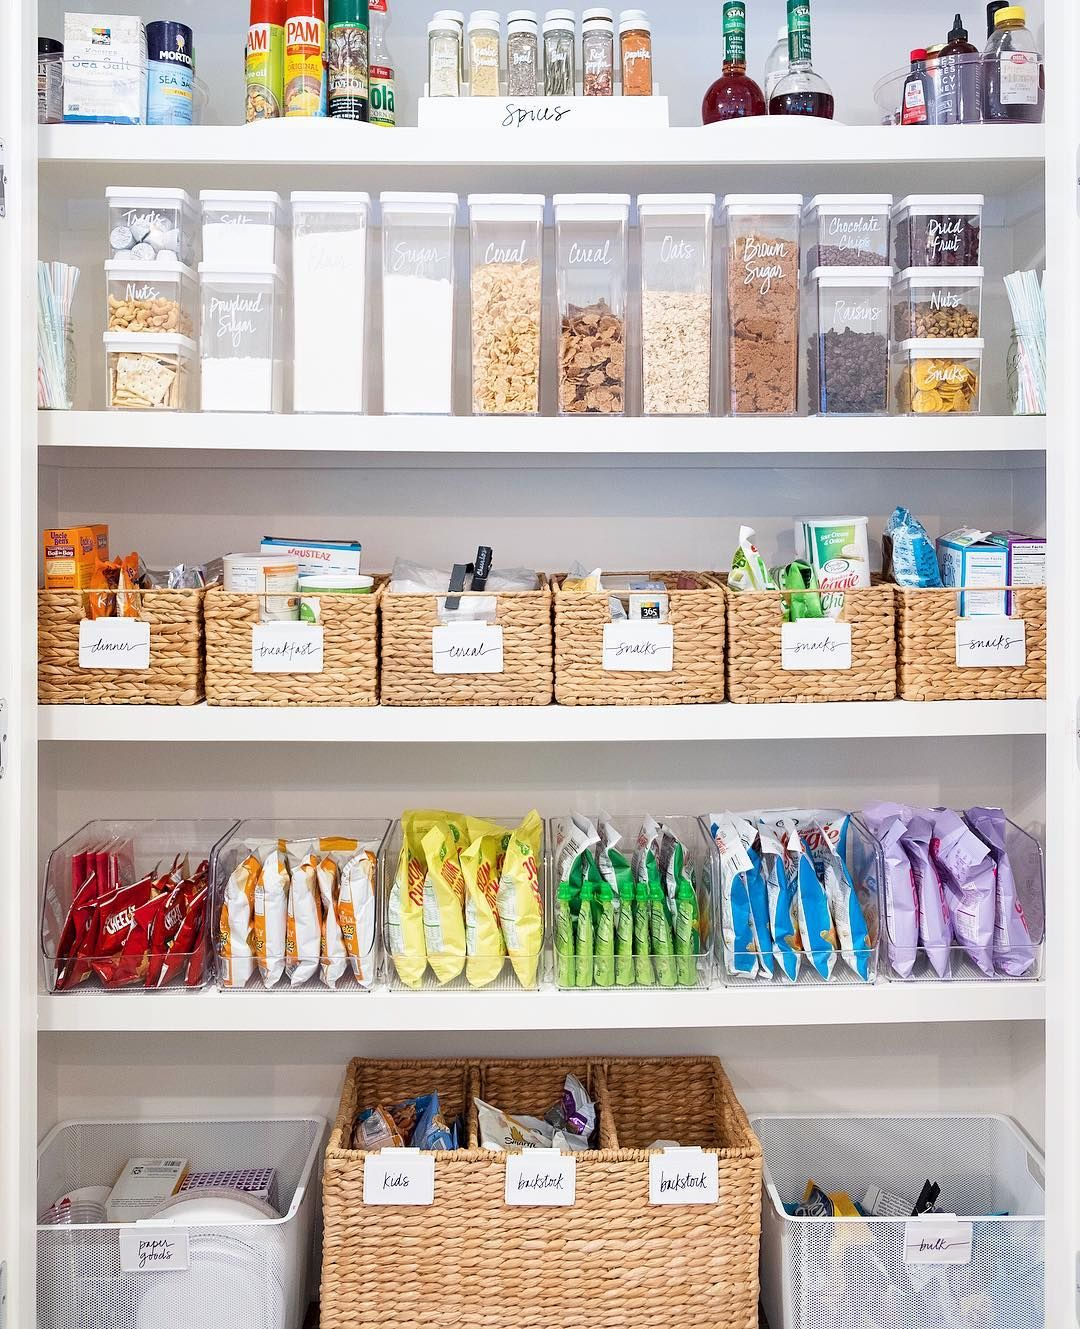 A: Every single pantry needs to have some form of a basket or bin to